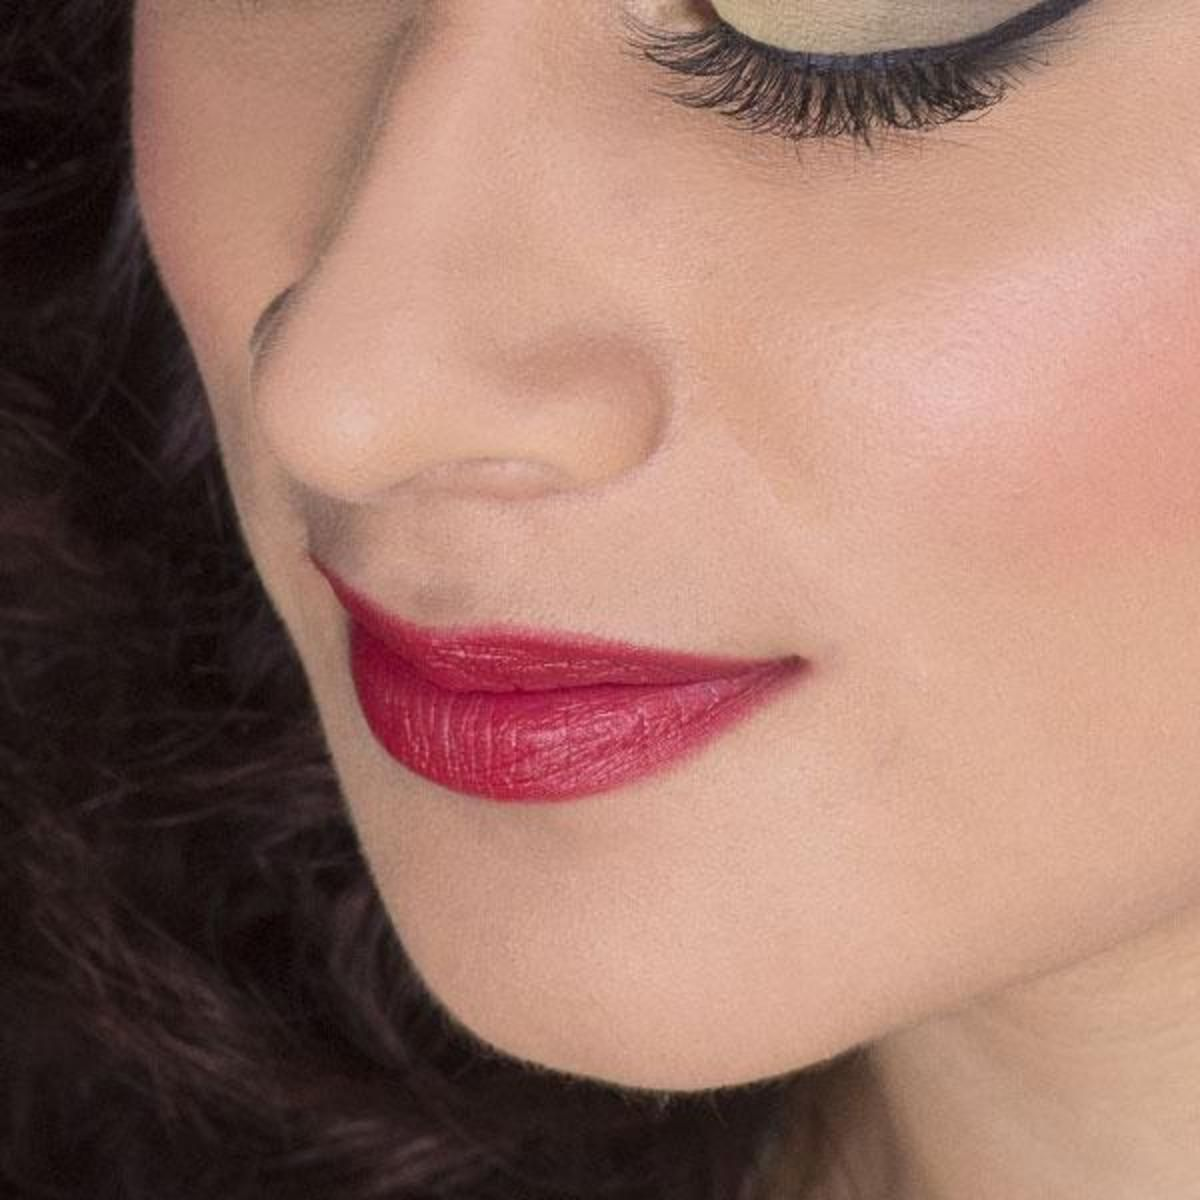 Faithful recreations of Snow White's lip color, based on the original